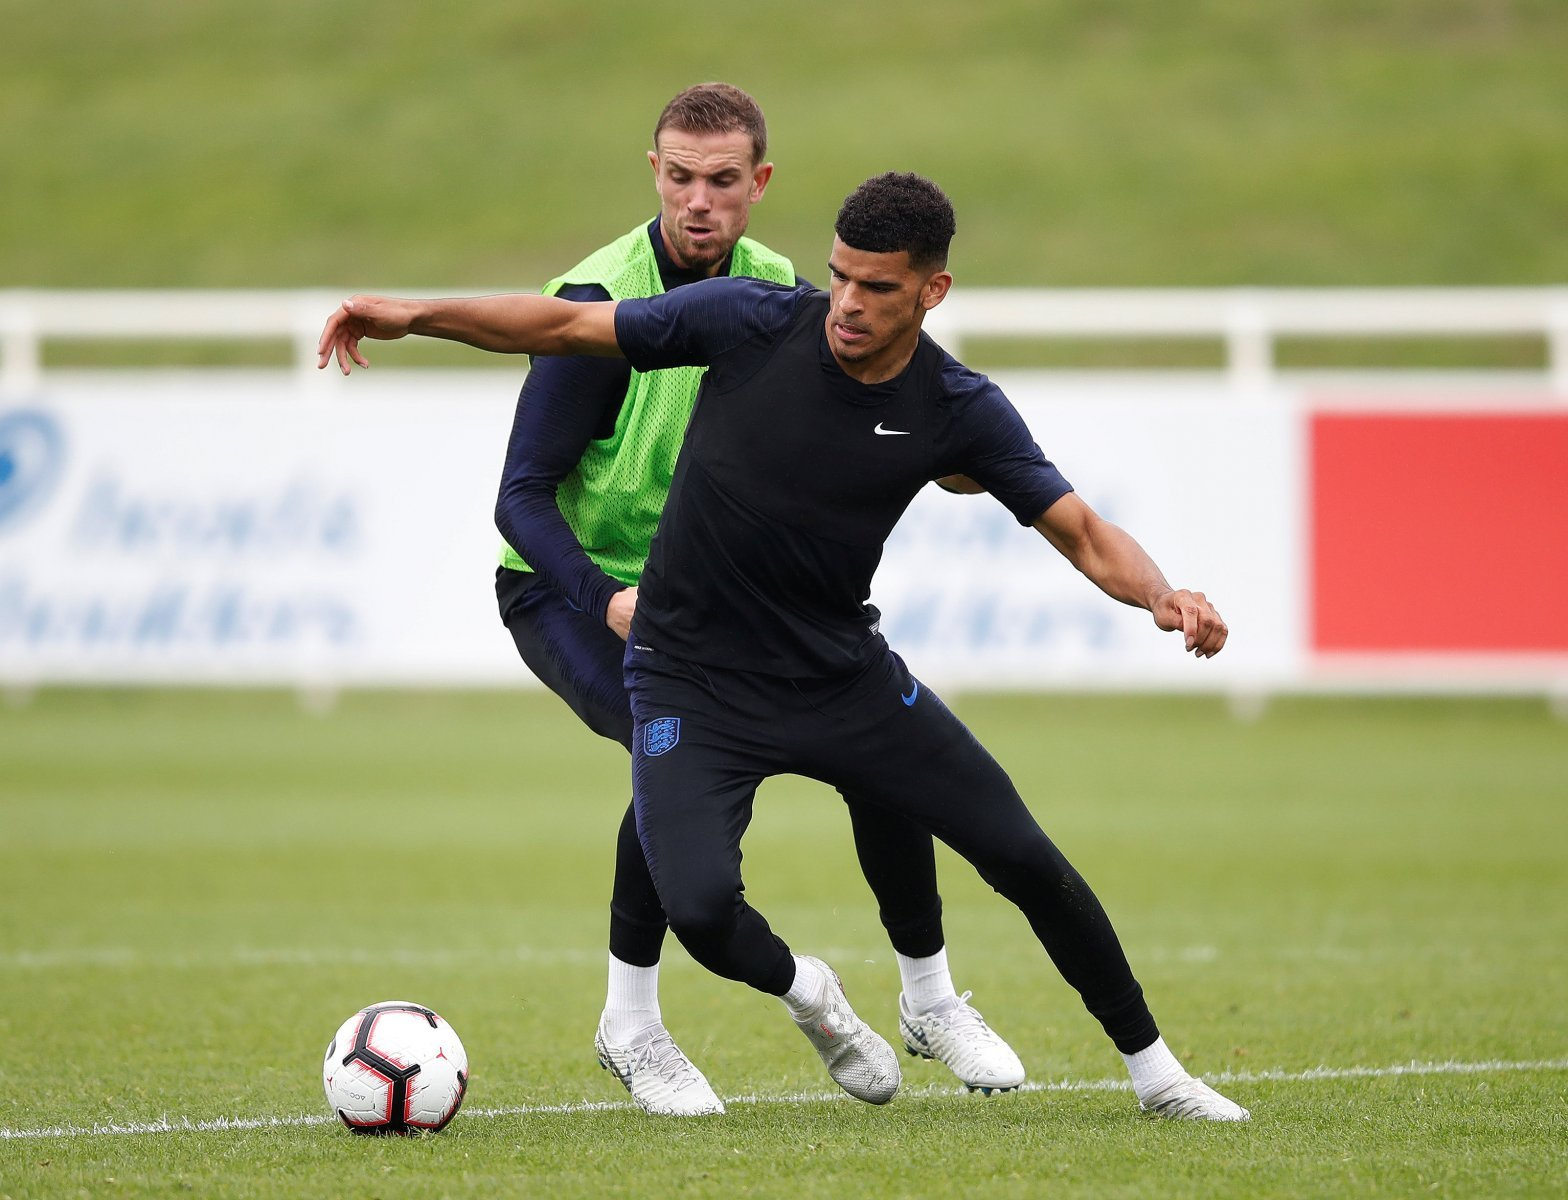 A loan move for Solanke and Celtic could work very well for both